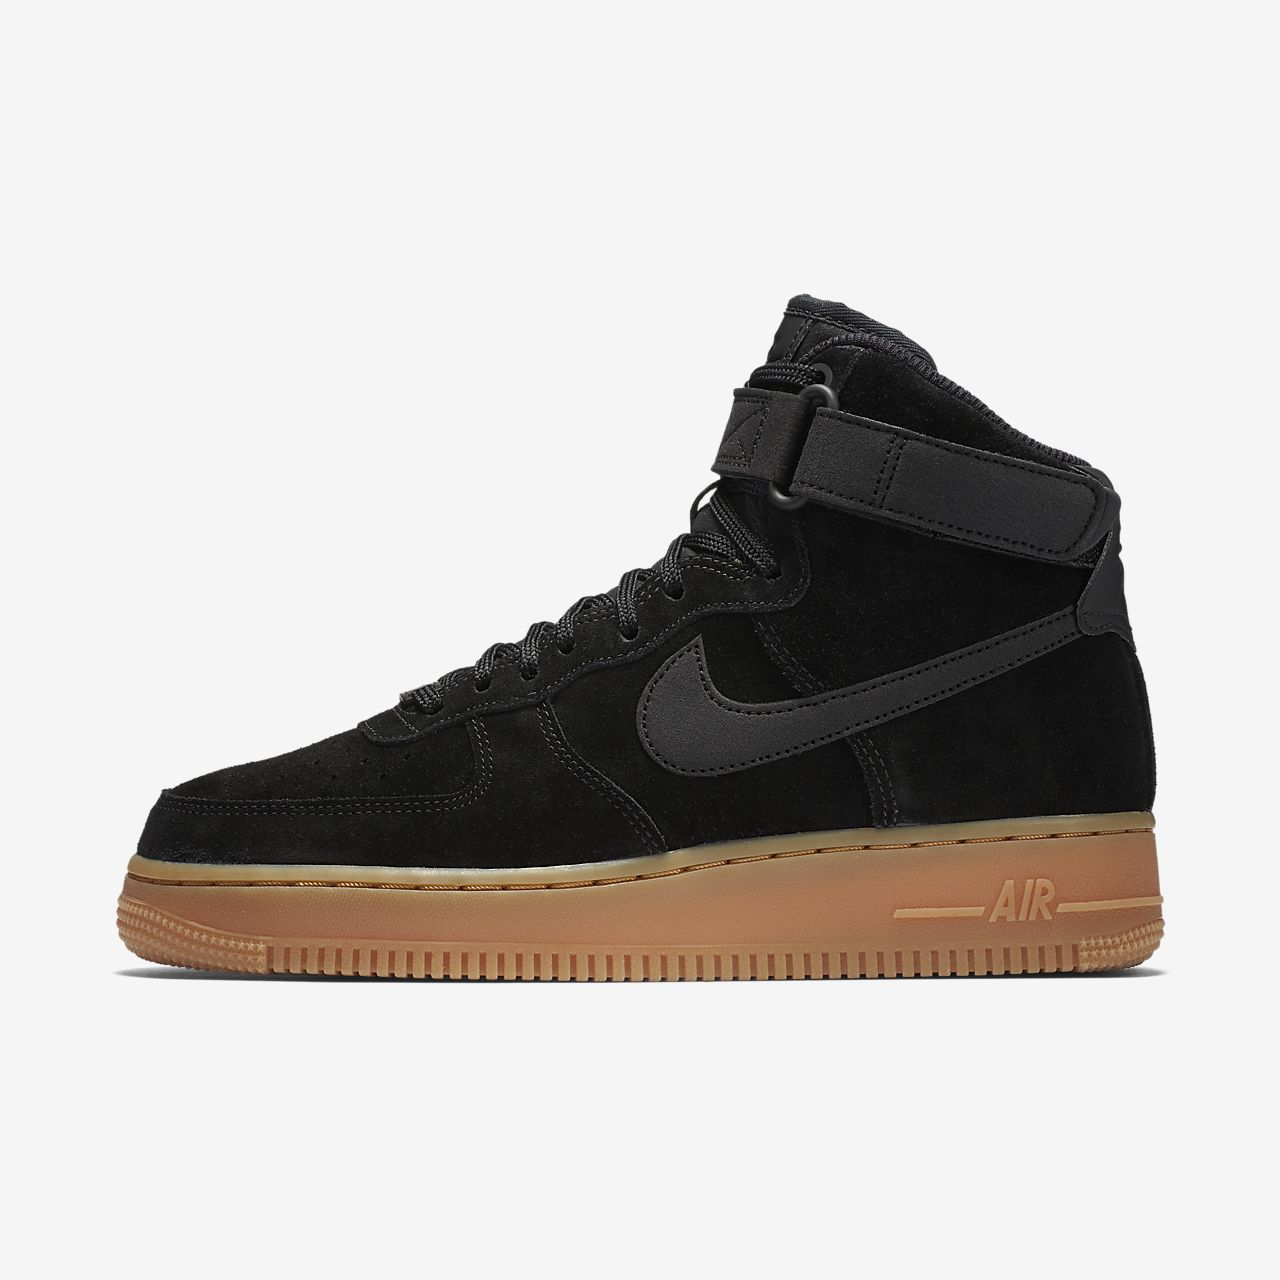 air force 1 low black and tan nz